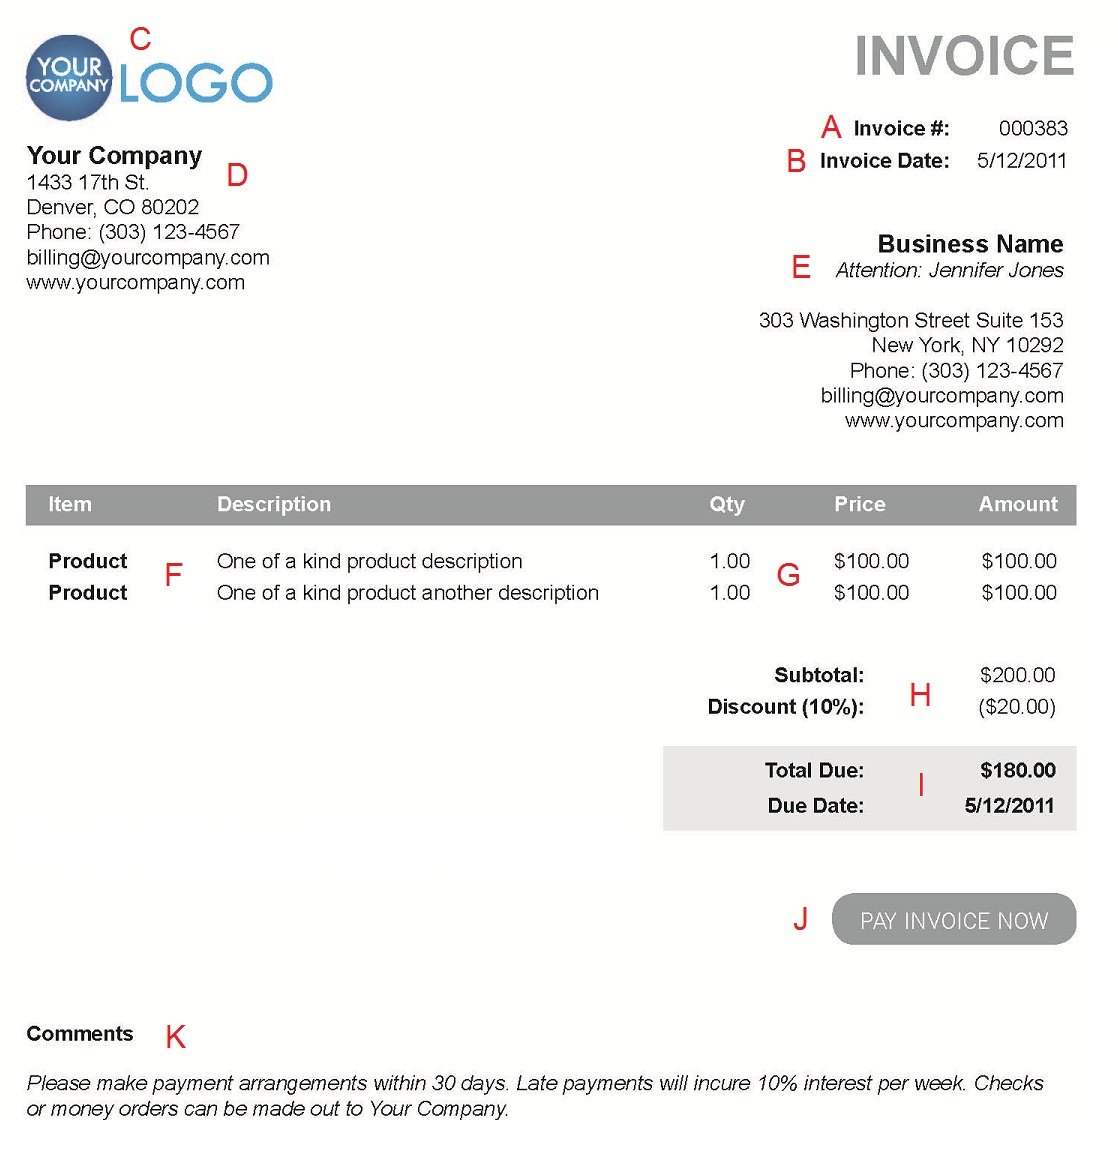 Bringjacobolivierhomeus  Fascinating The  Different Sections Of An Electronic Payment Invoice With Gorgeous A  With Captivating Hdfc Life Insurance Premium Receipt Also To Receipt In Addition Shipping Receipt Template And Acknowledgement Of Receipt Of Letter As Well As Temporary Hand Receipt Additionally Receipts And Payment From Paysimplecom With Bringjacobolivierhomeus  Gorgeous The  Different Sections Of An Electronic Payment Invoice With Captivating A  And Fascinating Hdfc Life Insurance Premium Receipt Also To Receipt In Addition Shipping Receipt Template From Paysimplecom